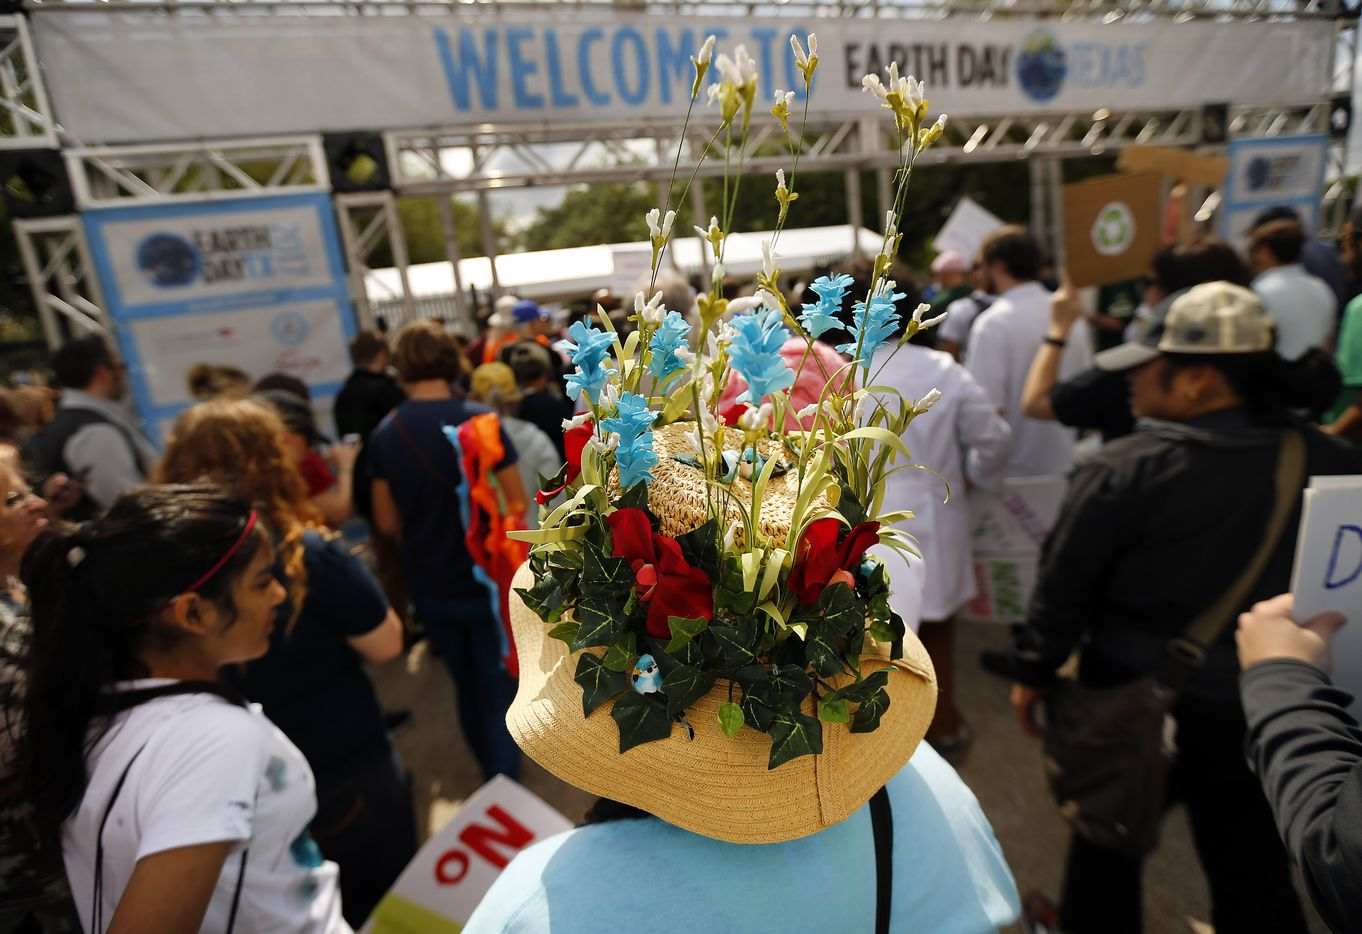 Cynthia Schmidt of Euless made a floral hat for the March For Science rally and march that ended at Fair Park's Earth Day celebration, Saturday, April 22, 2017. (Tom Fox/The Dallas Morning News)